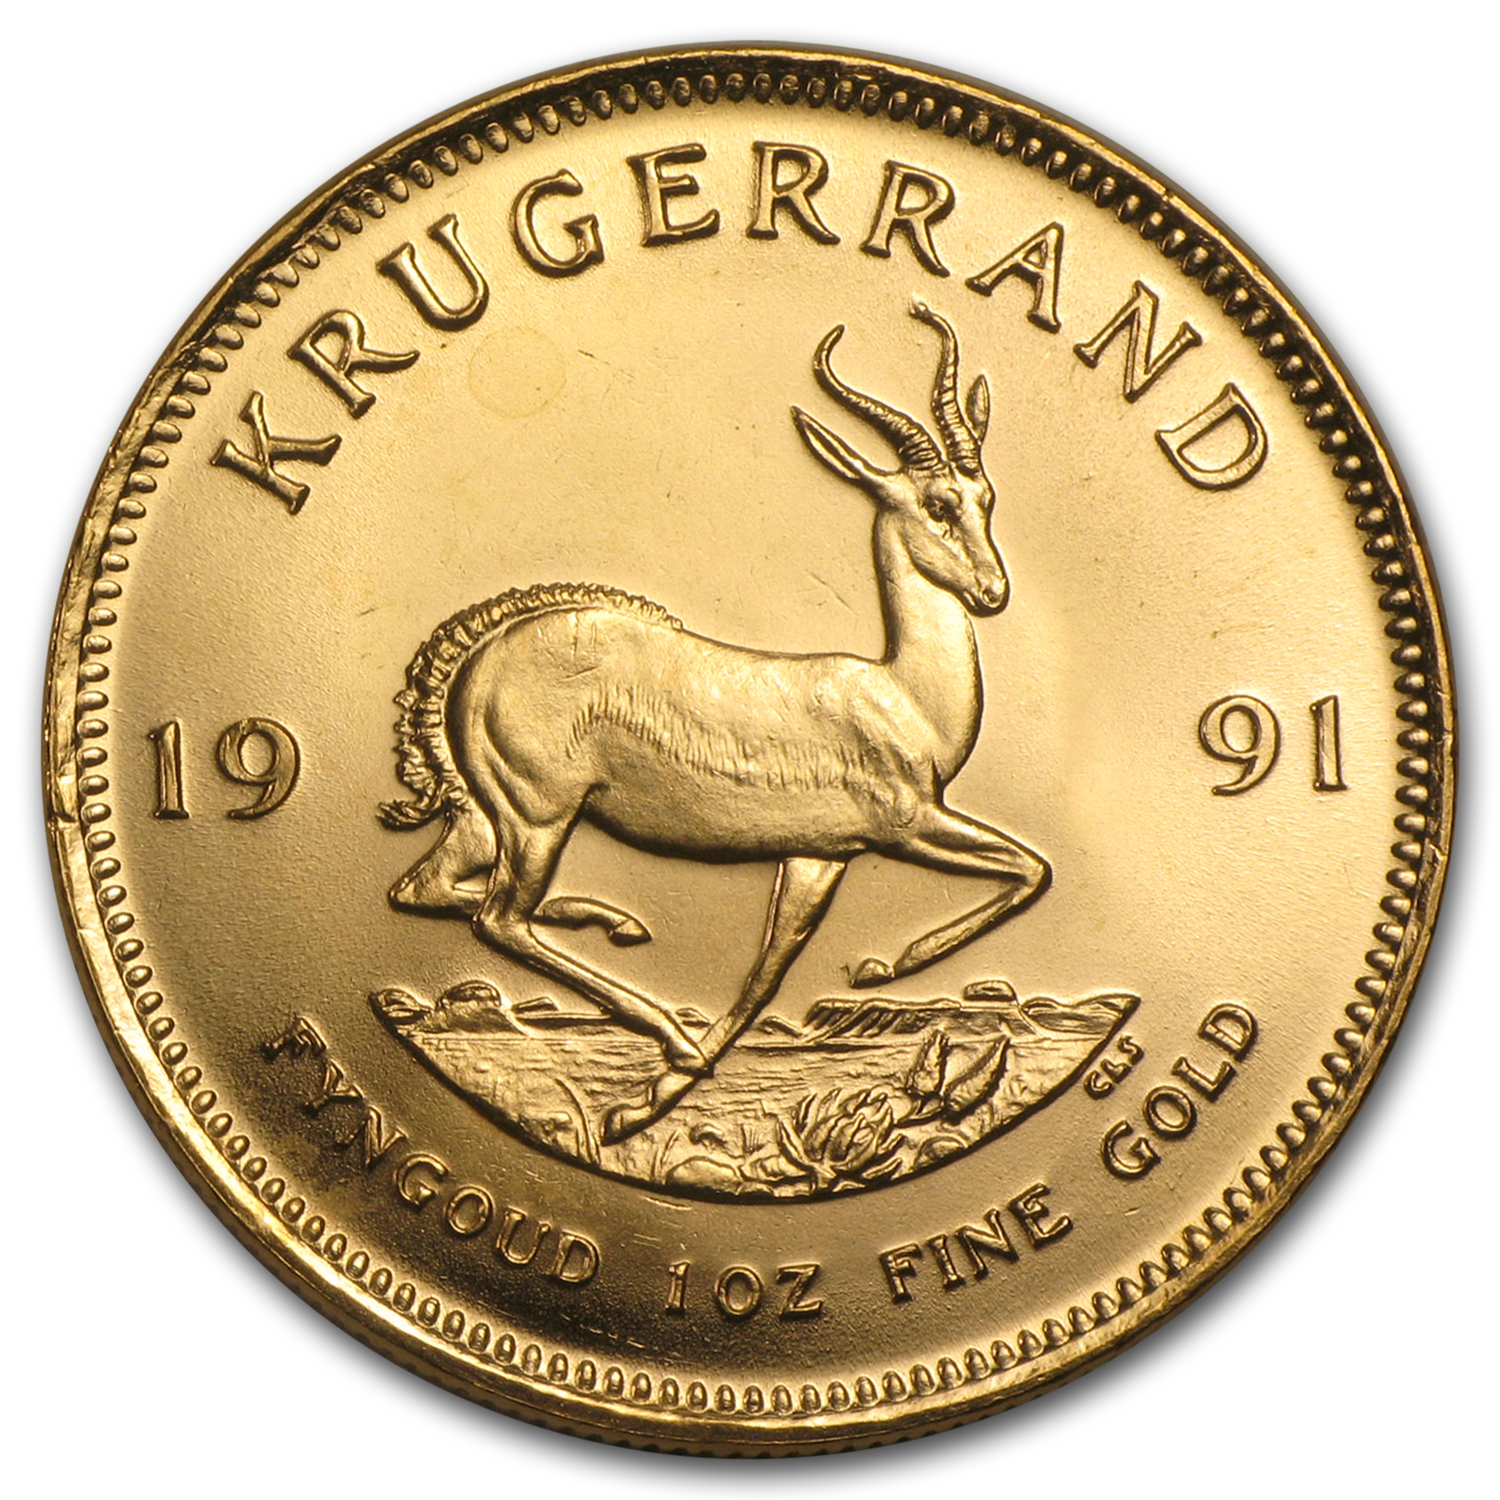 1991 1 oz Gold South African Krugerrand